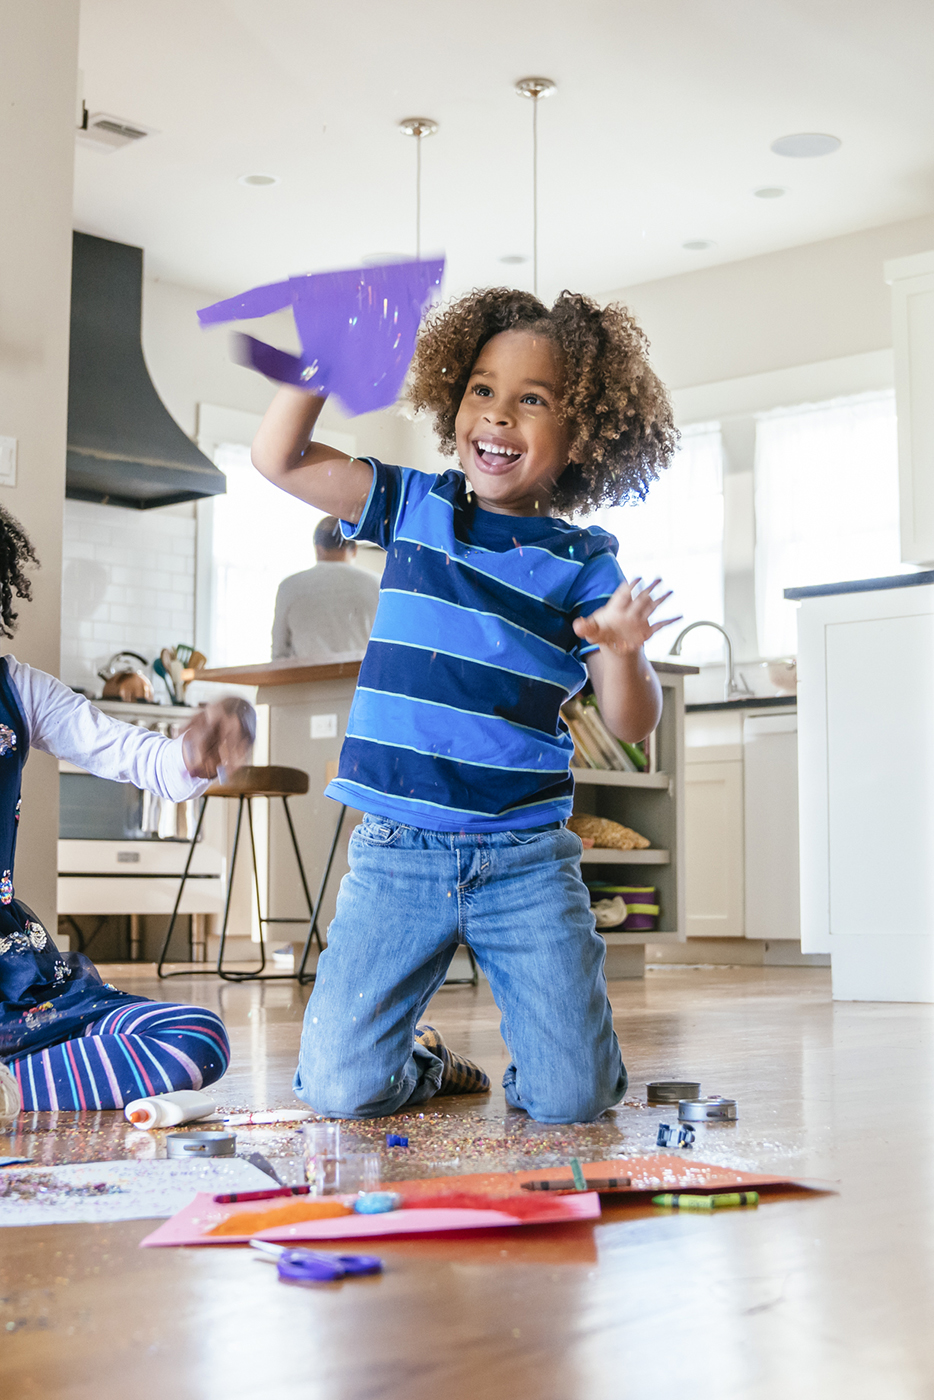 Young boy making a glittery mess shot by Inti St. Clair for Arm and Hammer Clean and Simple laundry detergent